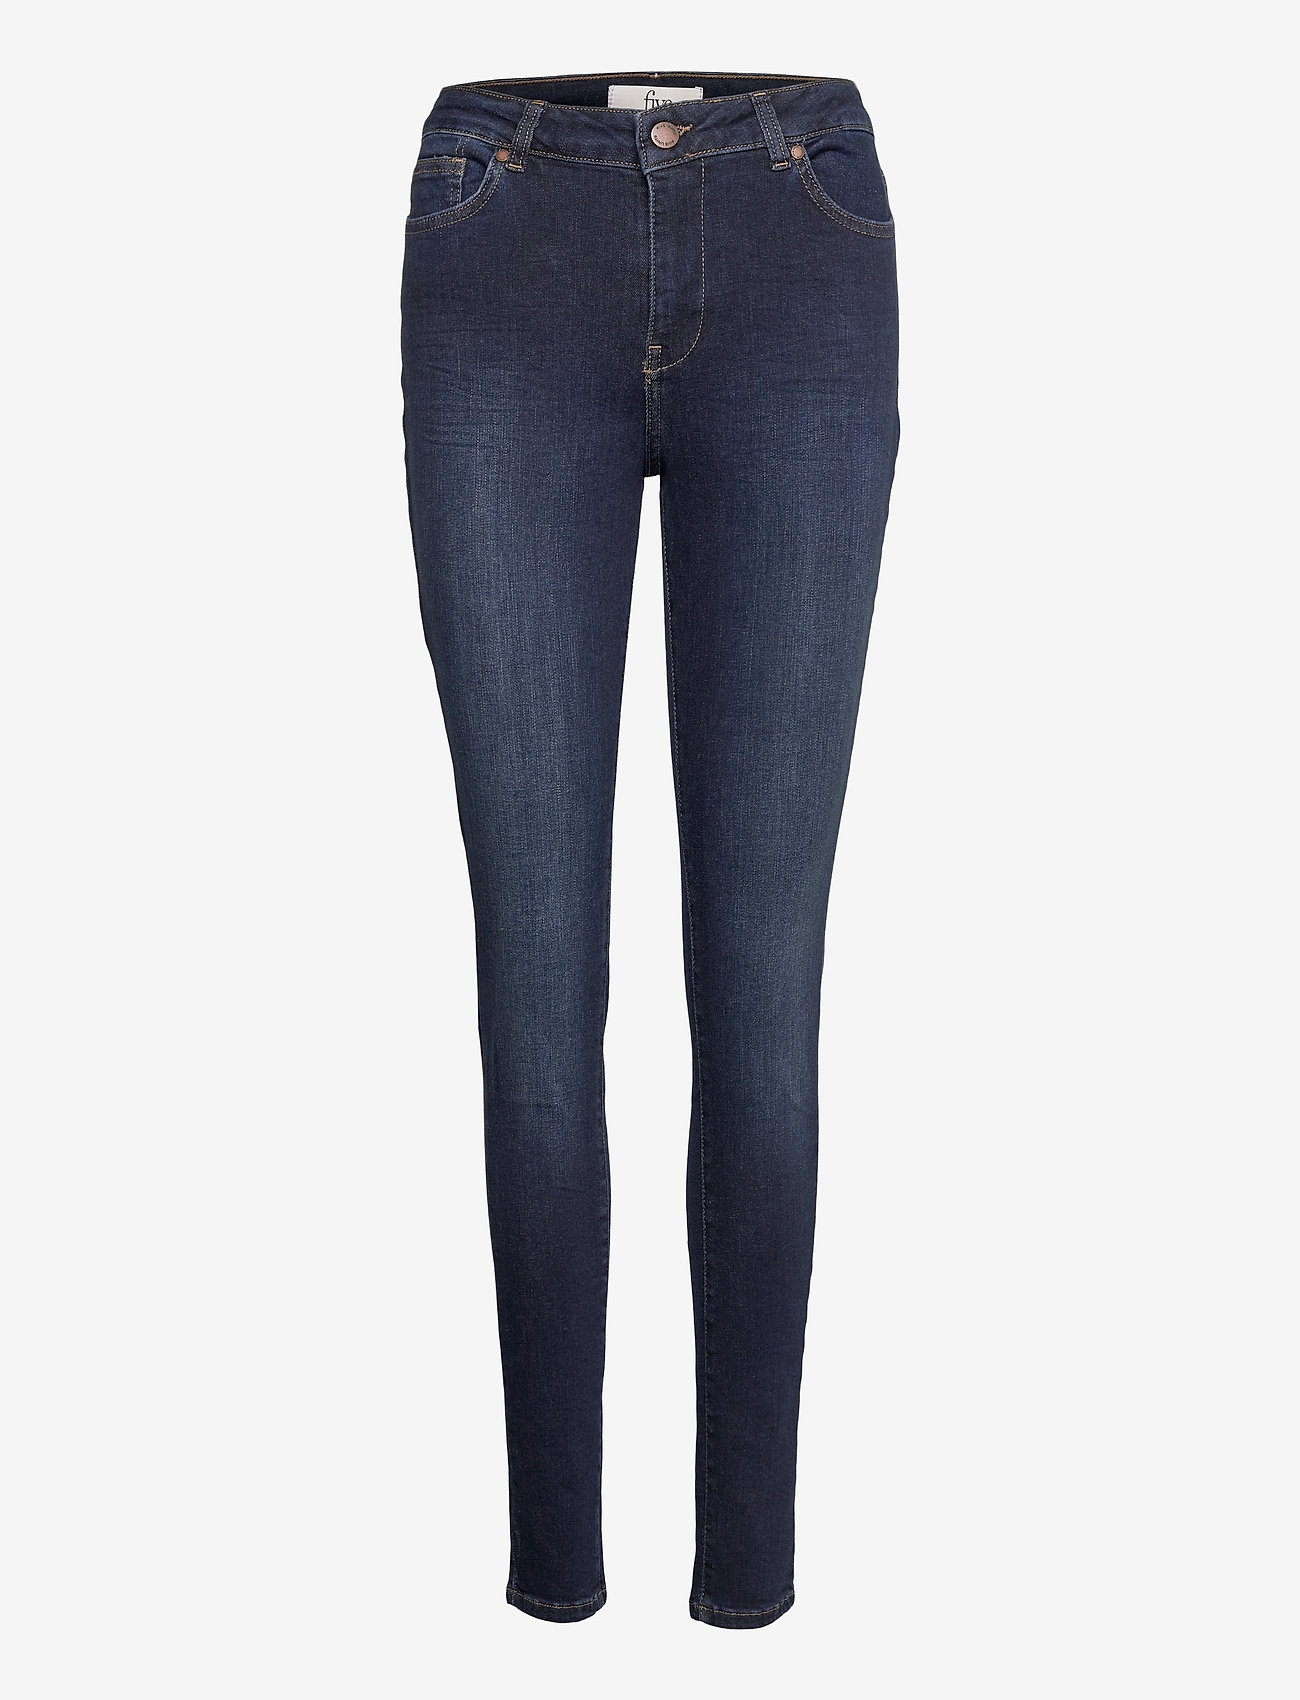 FIVEUNITS - Kate 893 - skinny jeans - galaxy blue ease - 0